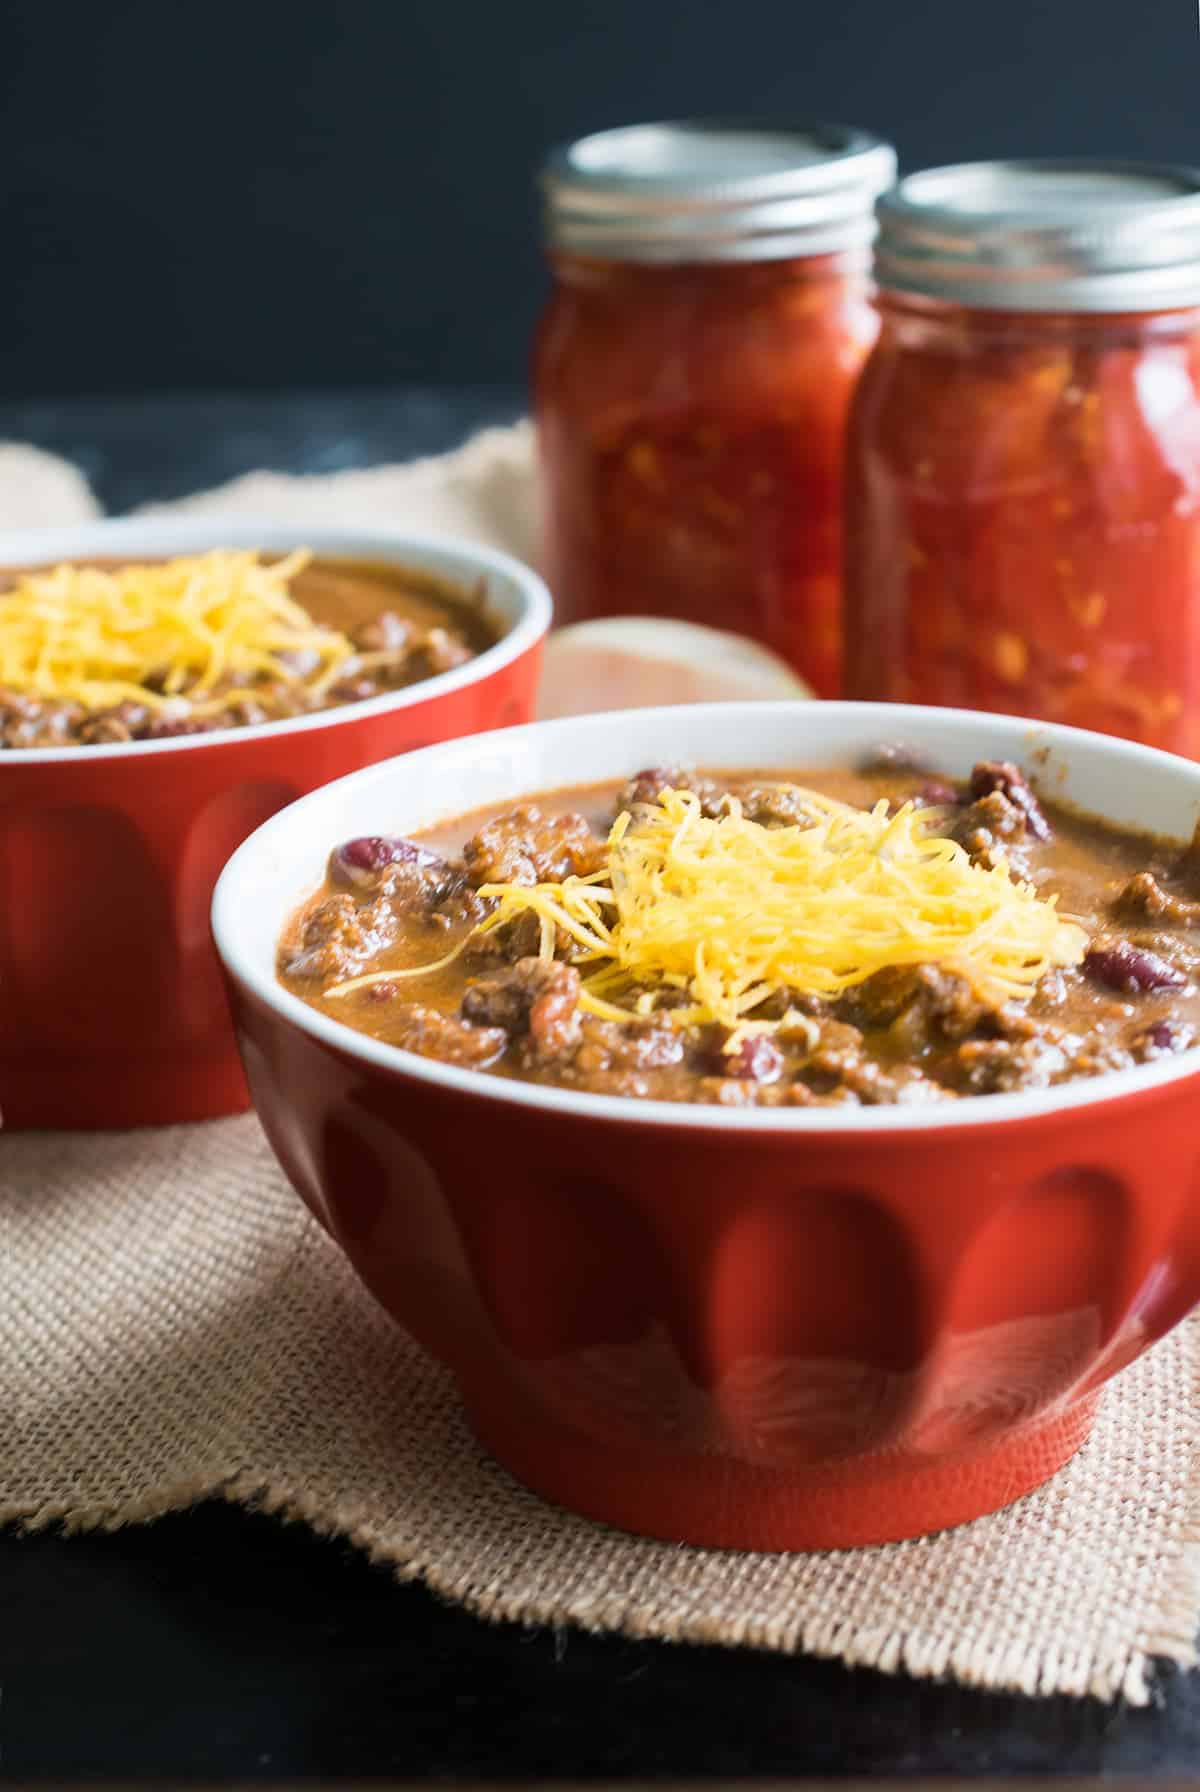 Made from scratch Authentic Cincinnati Chili Recipe- served in red bowls with jarred tomatoes in background